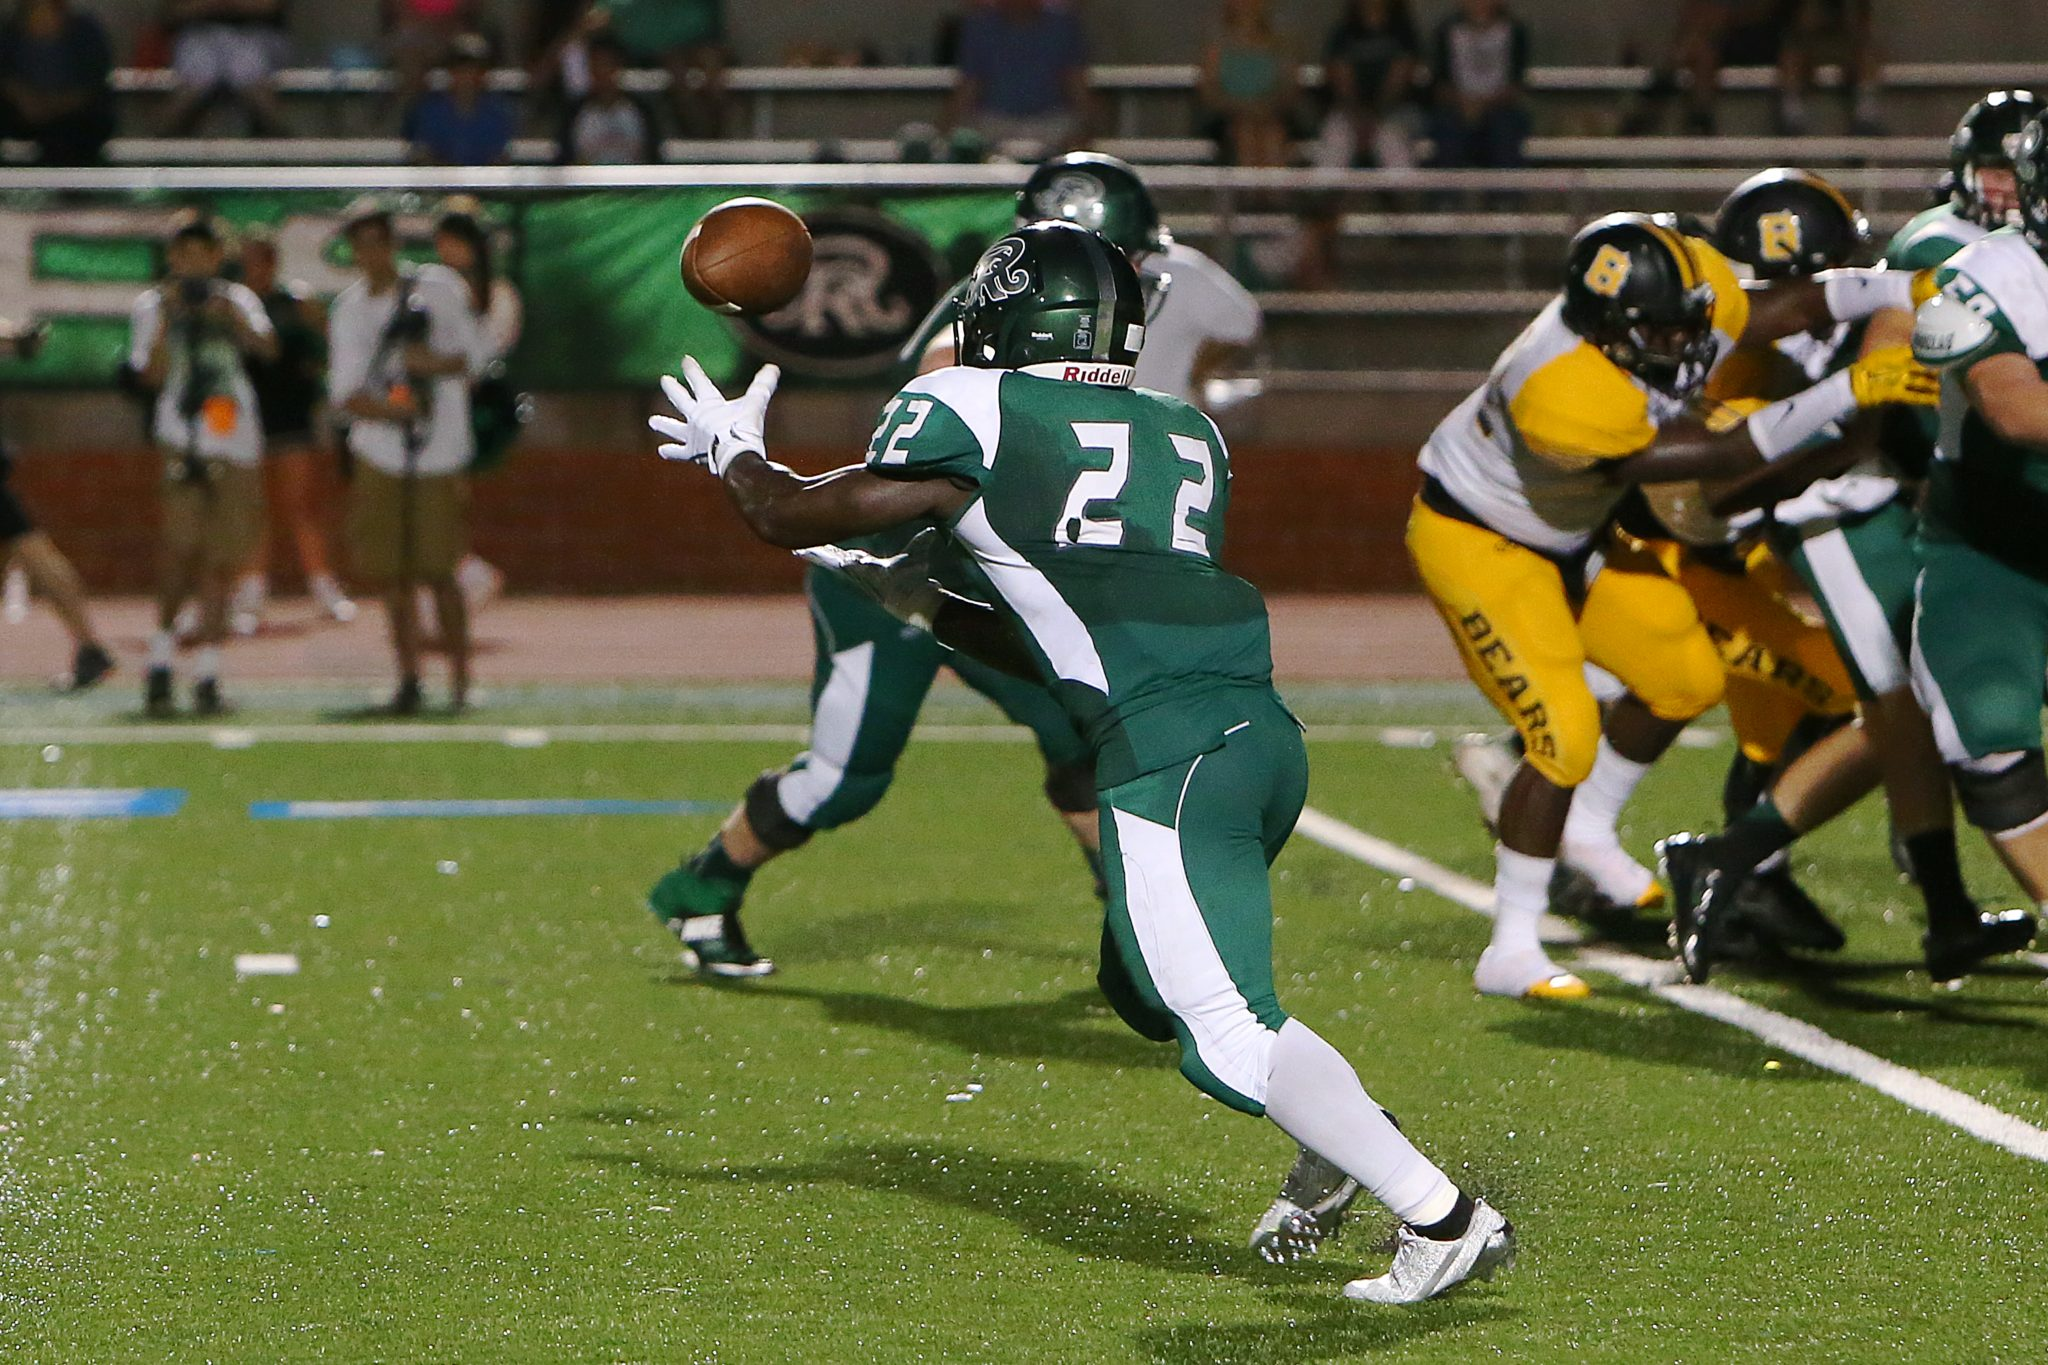 Marquis Duncan had a great night running and Catching passes (vs. Brennan)